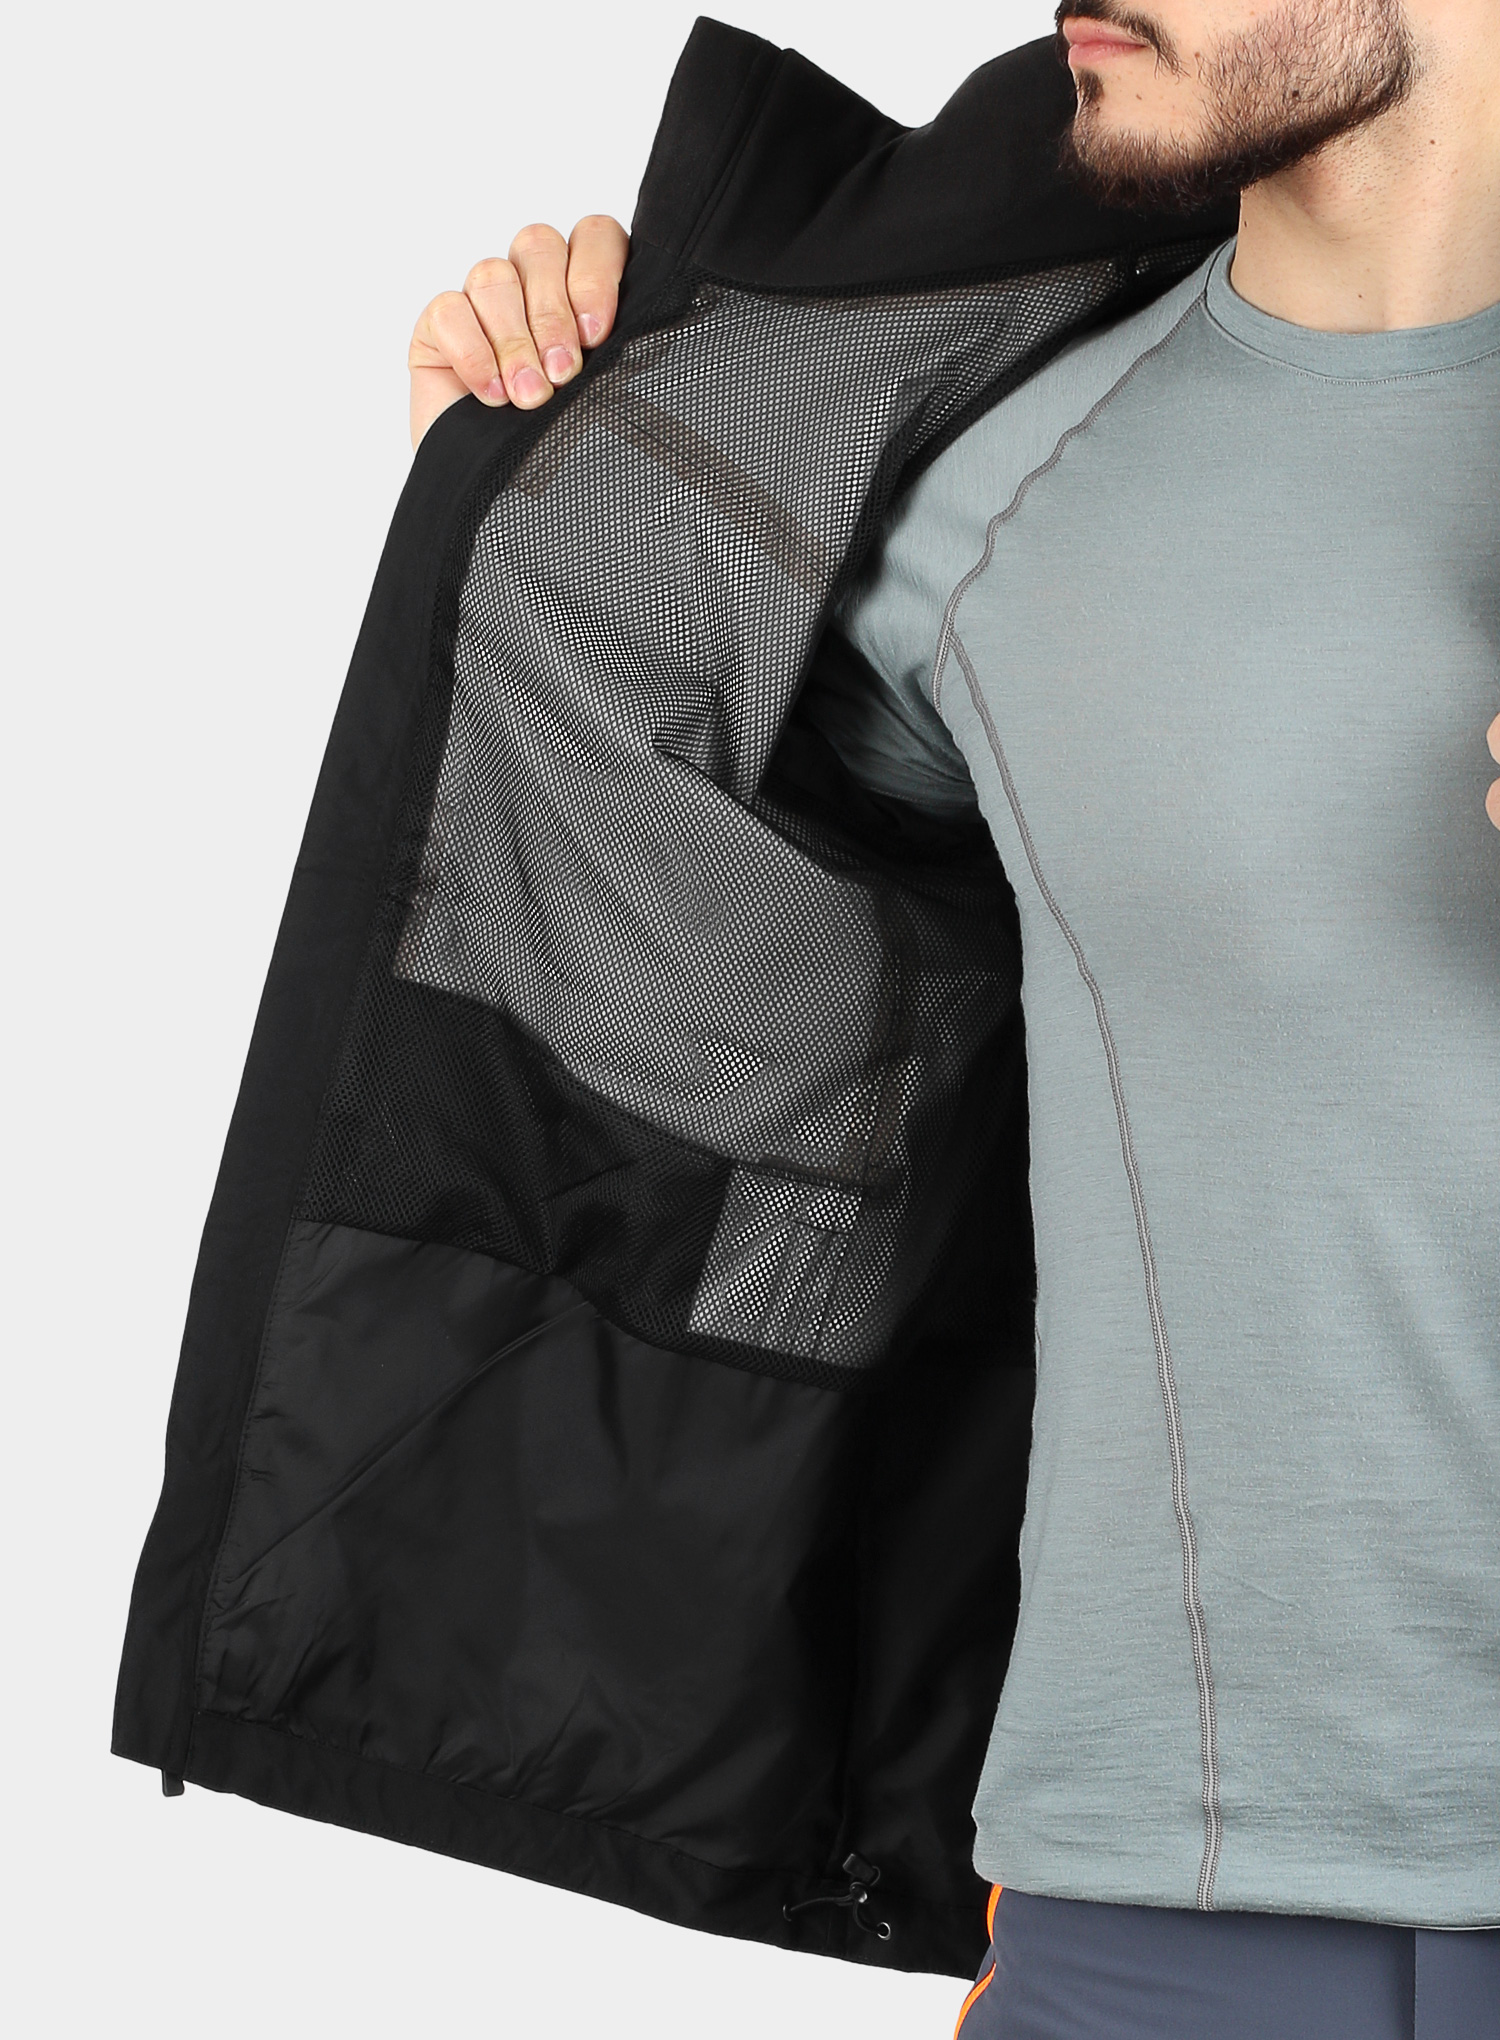 Kurtka The North Face Sangro Jacket - black - zdjęcie nr. 10